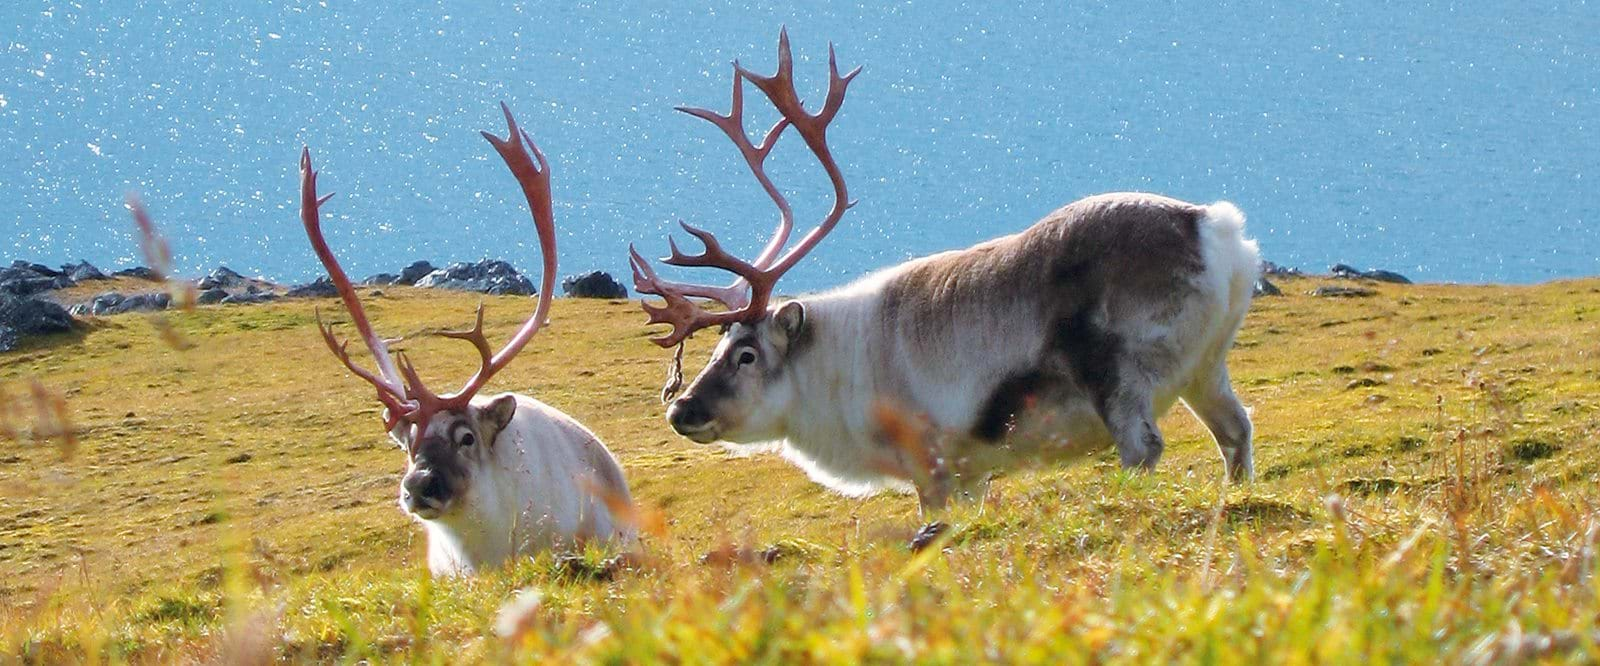 Svalbard, expedition, Cruise, Arctic, Reindeer